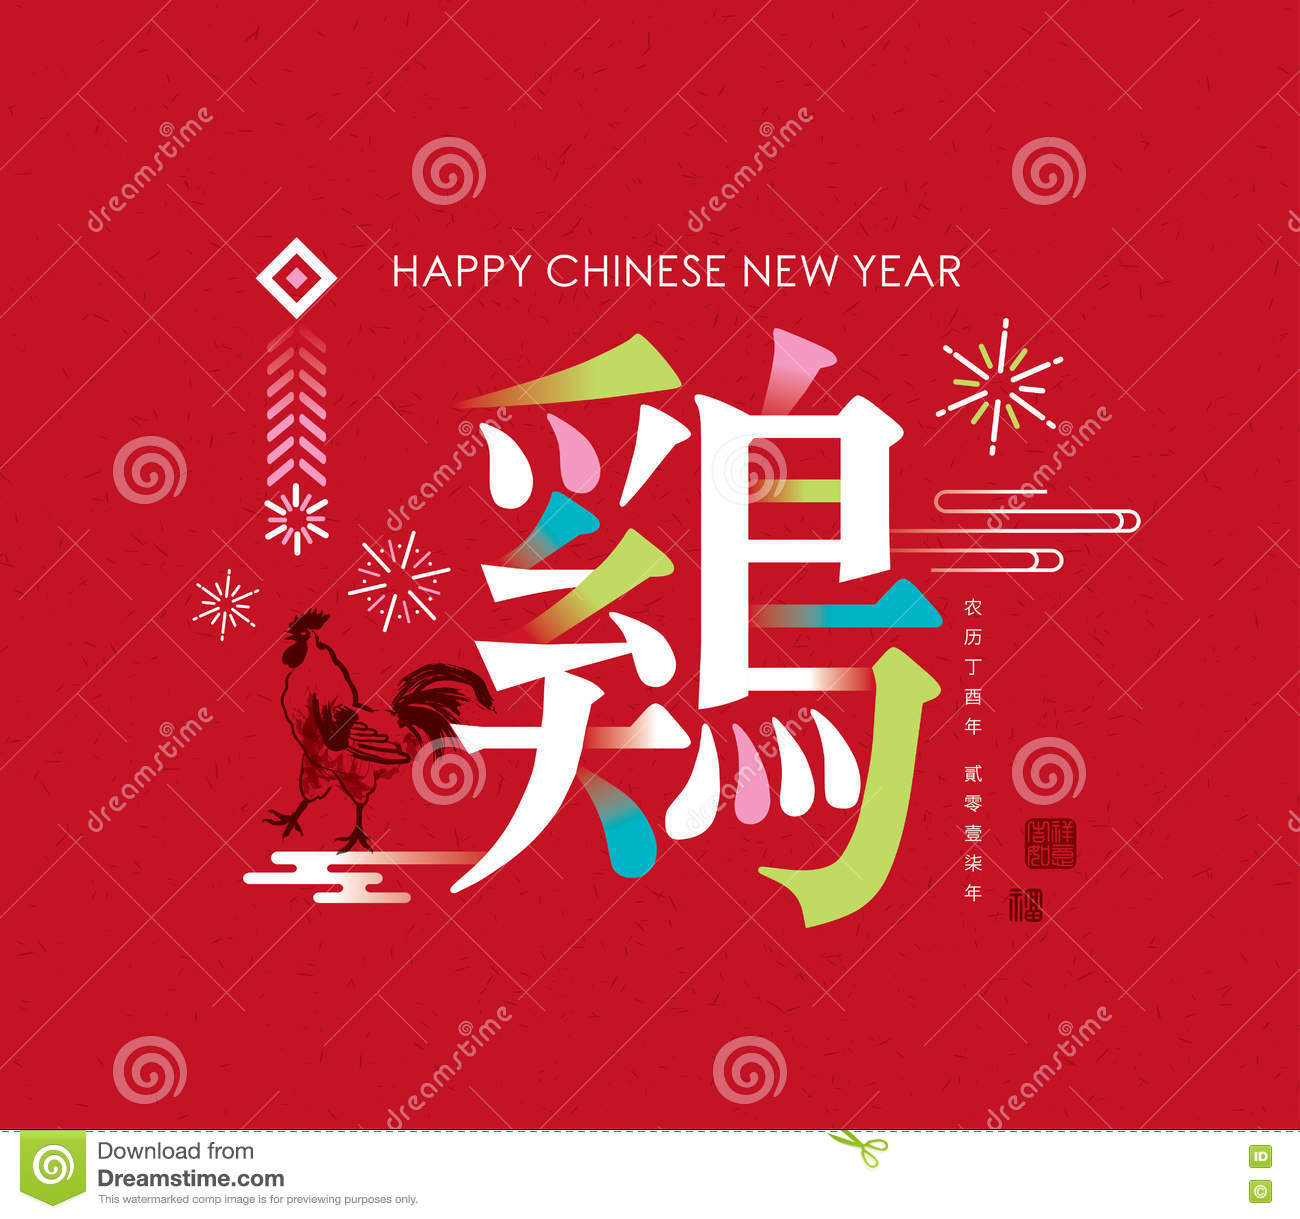 Happy Chinese New Year 2017 Stock Vector Illustration Of Icon